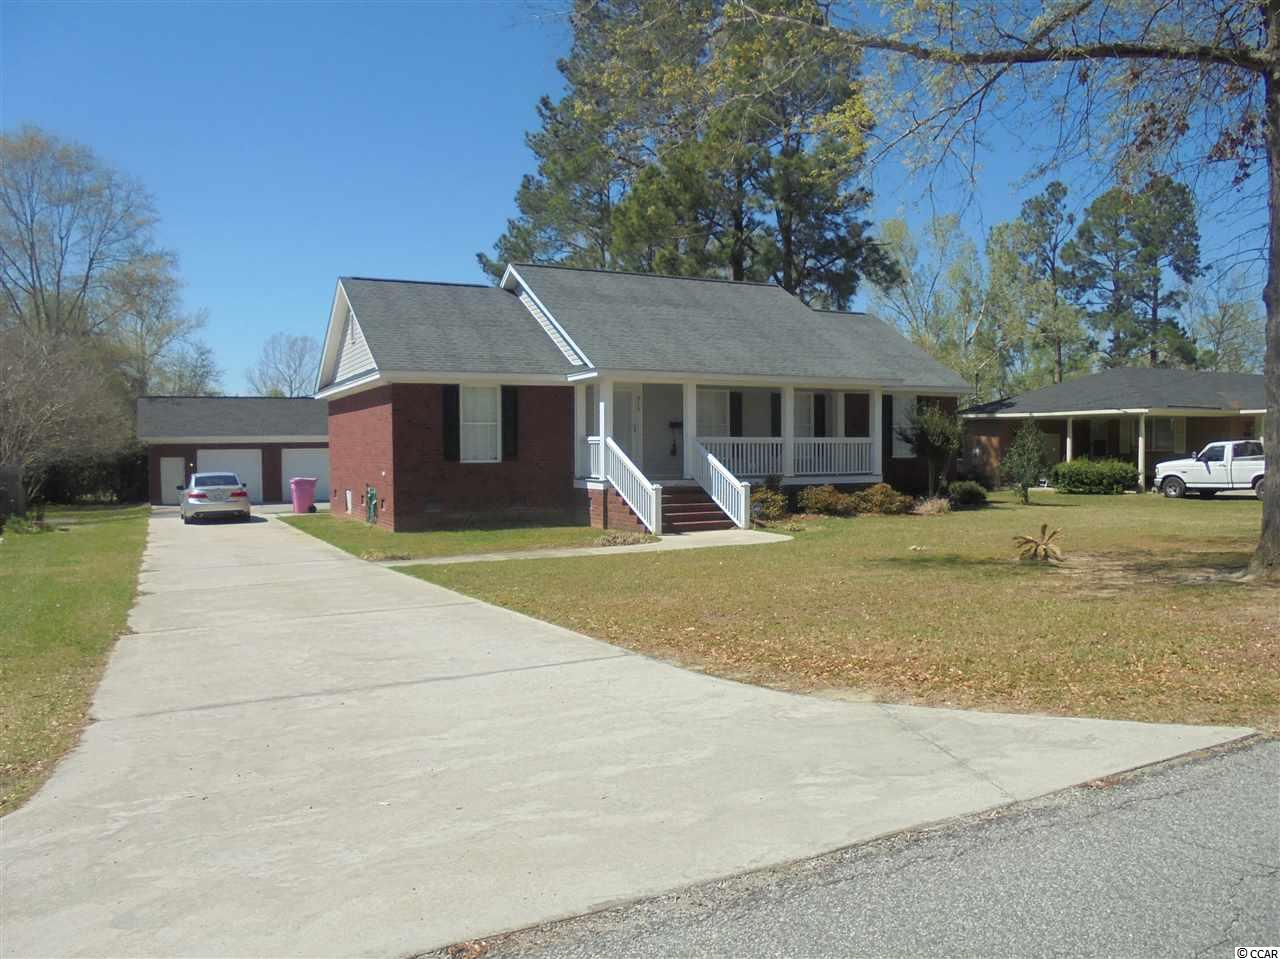 913 N Withlacoochee Ave., Marion, SC 29571